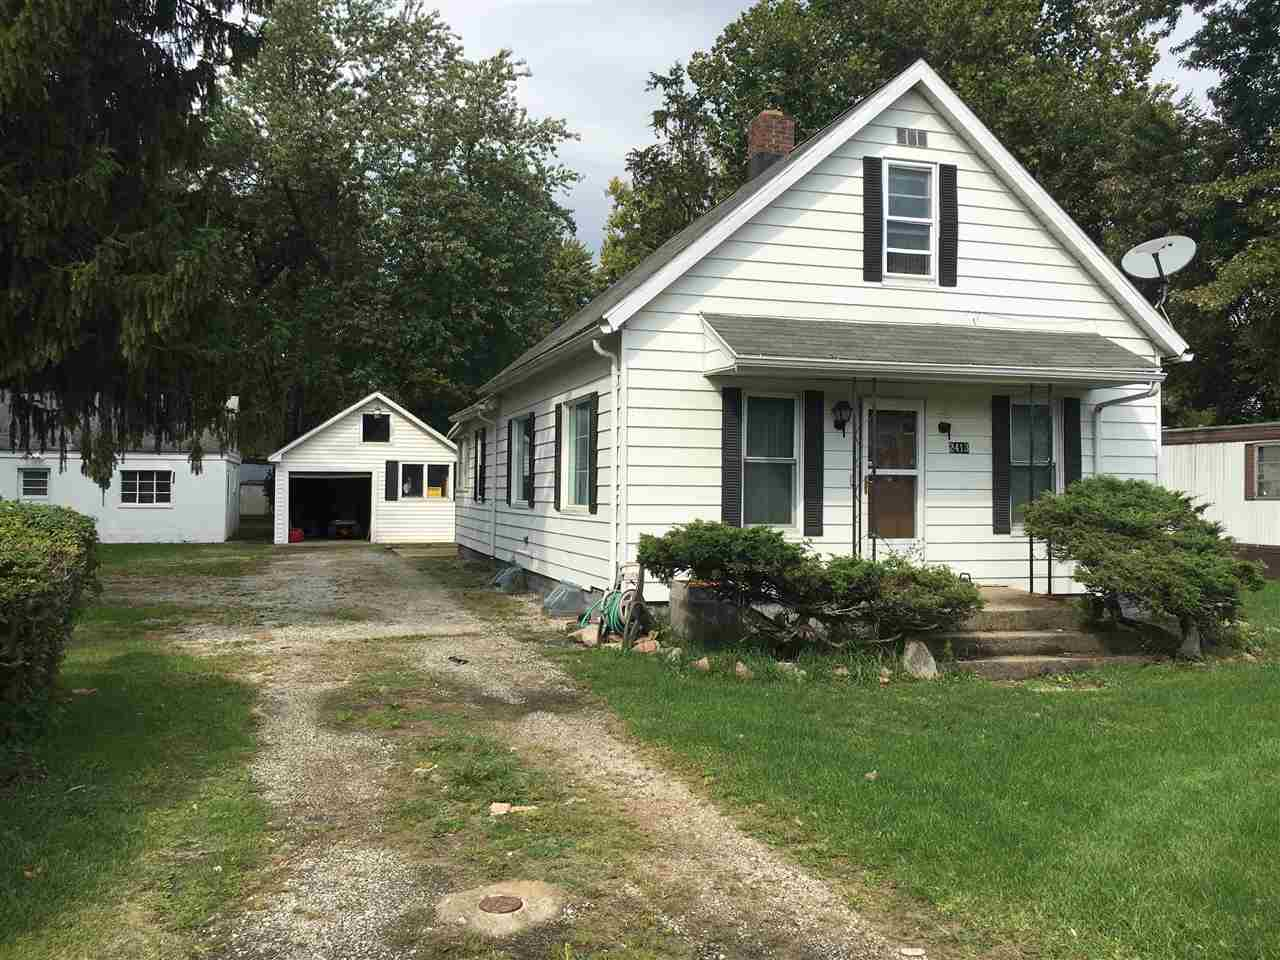 2413 Praire Ave., South Bend, IN 46614